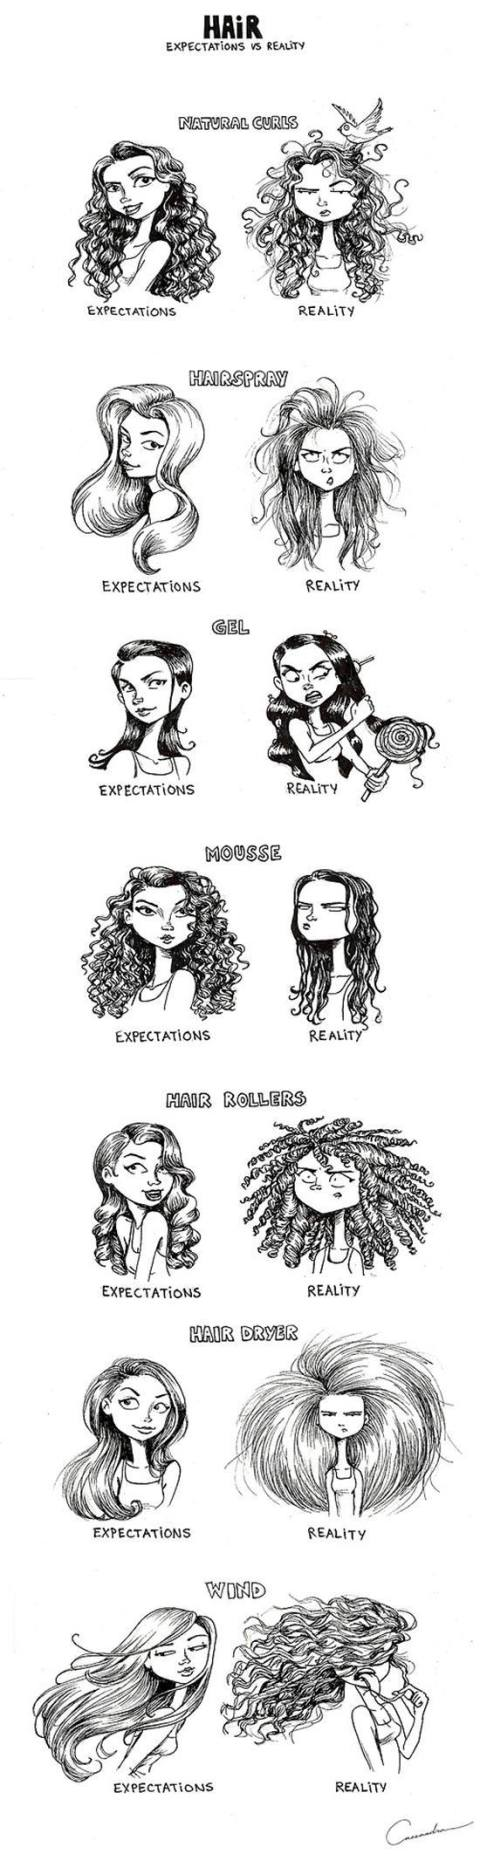 Girl thing beauty struggle expectation reality LoloableStuff blog